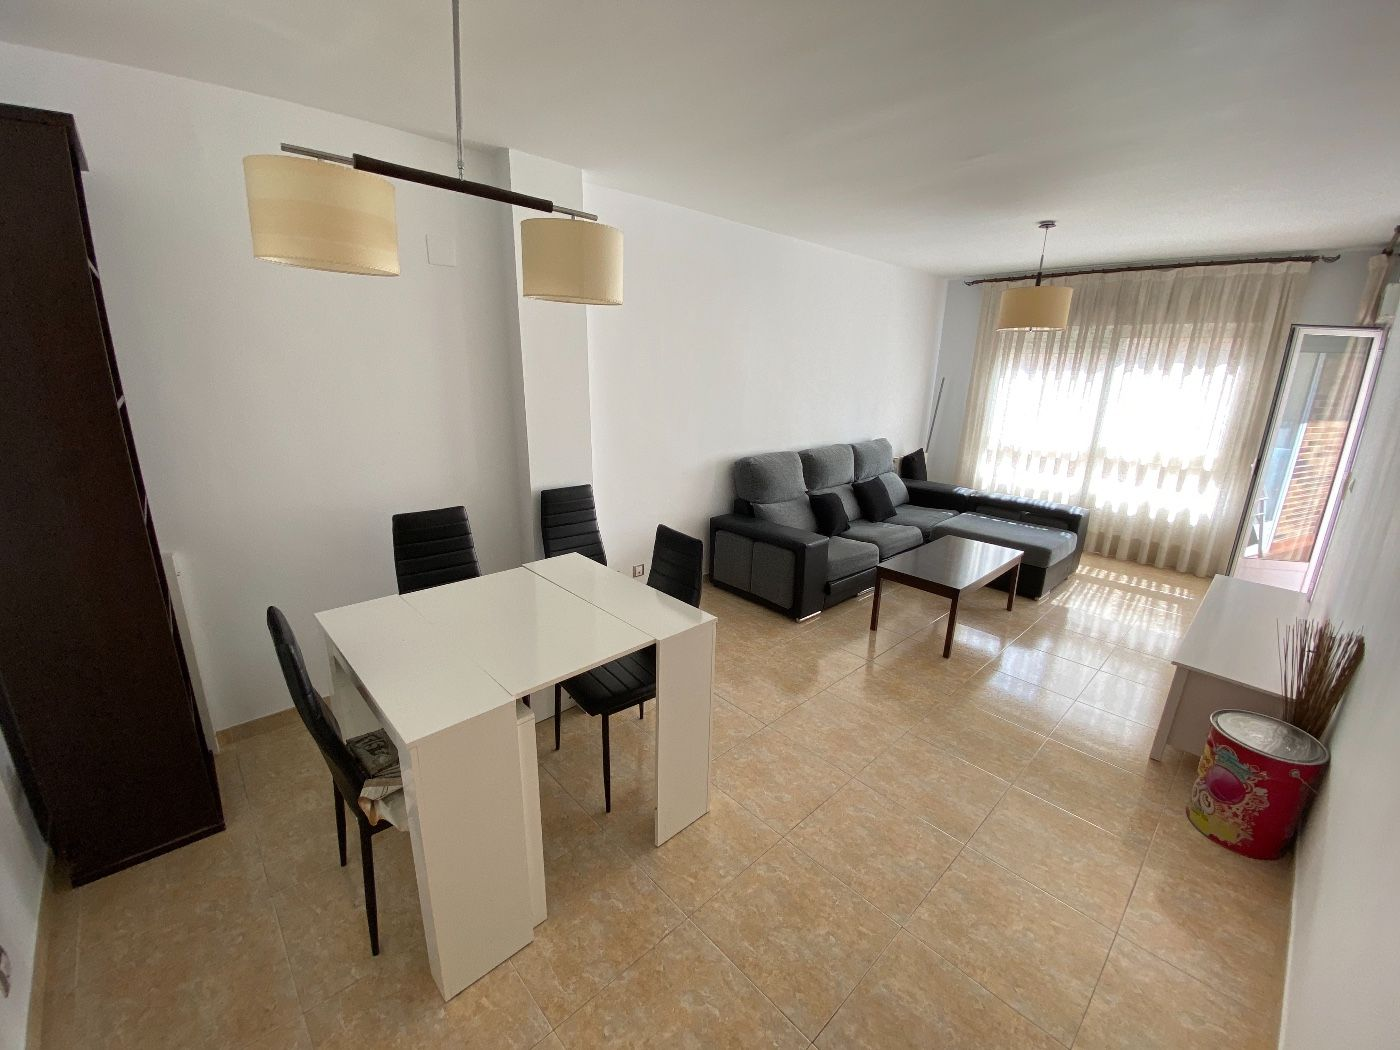 Apartment  Carrer general prim. Piso en venta, cambrils centro